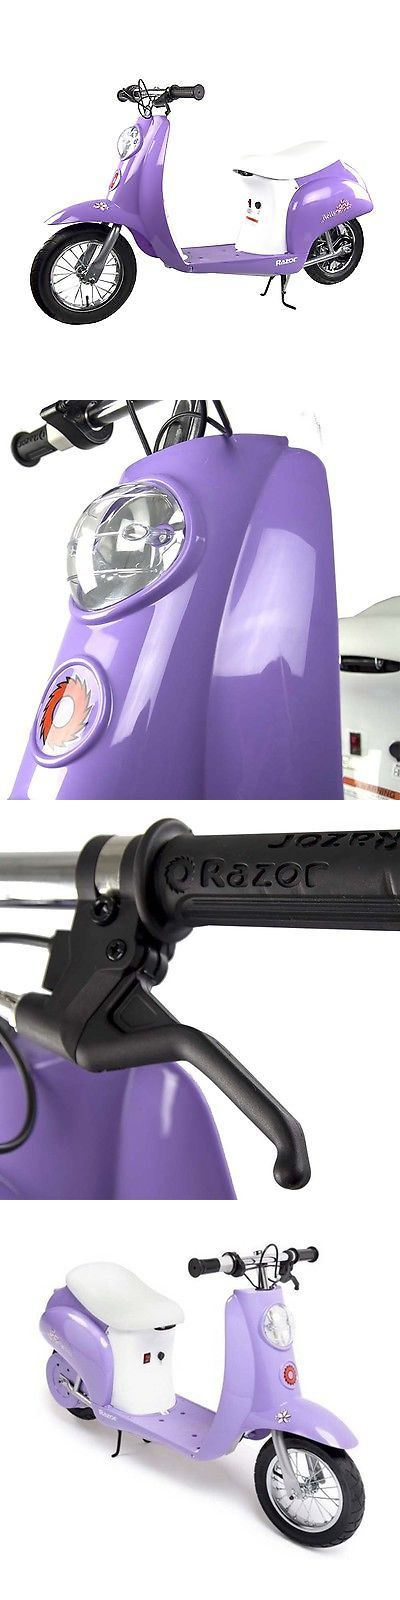 Electric Scooters 47349: Razor Pocket Mod Miniature Euro 24V Electric Retro Scooter, Purple BUY IT NOW ONLY: $249.99